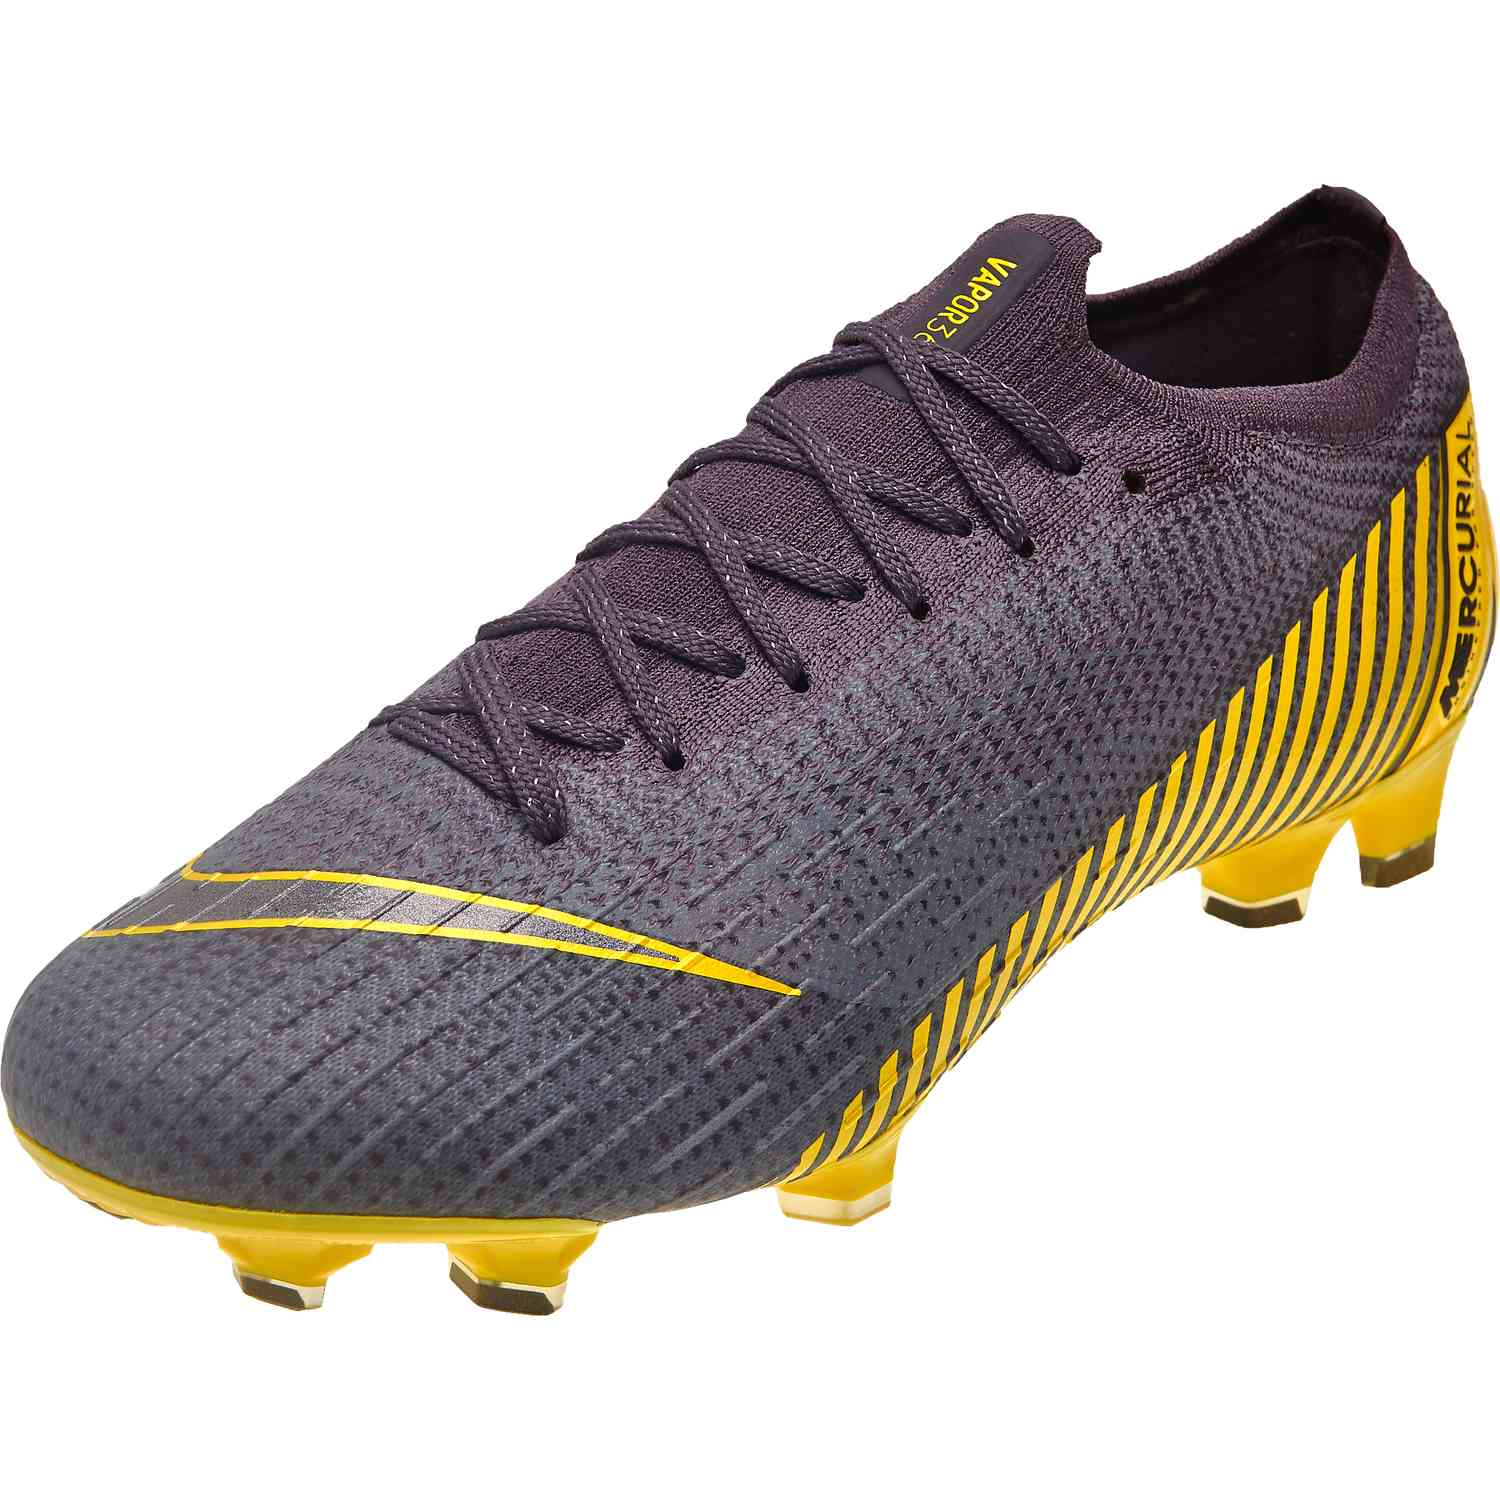 e36ccaf459db Nike Mercurial Vapor 12 Elite FG - Game Over - SoccerPro